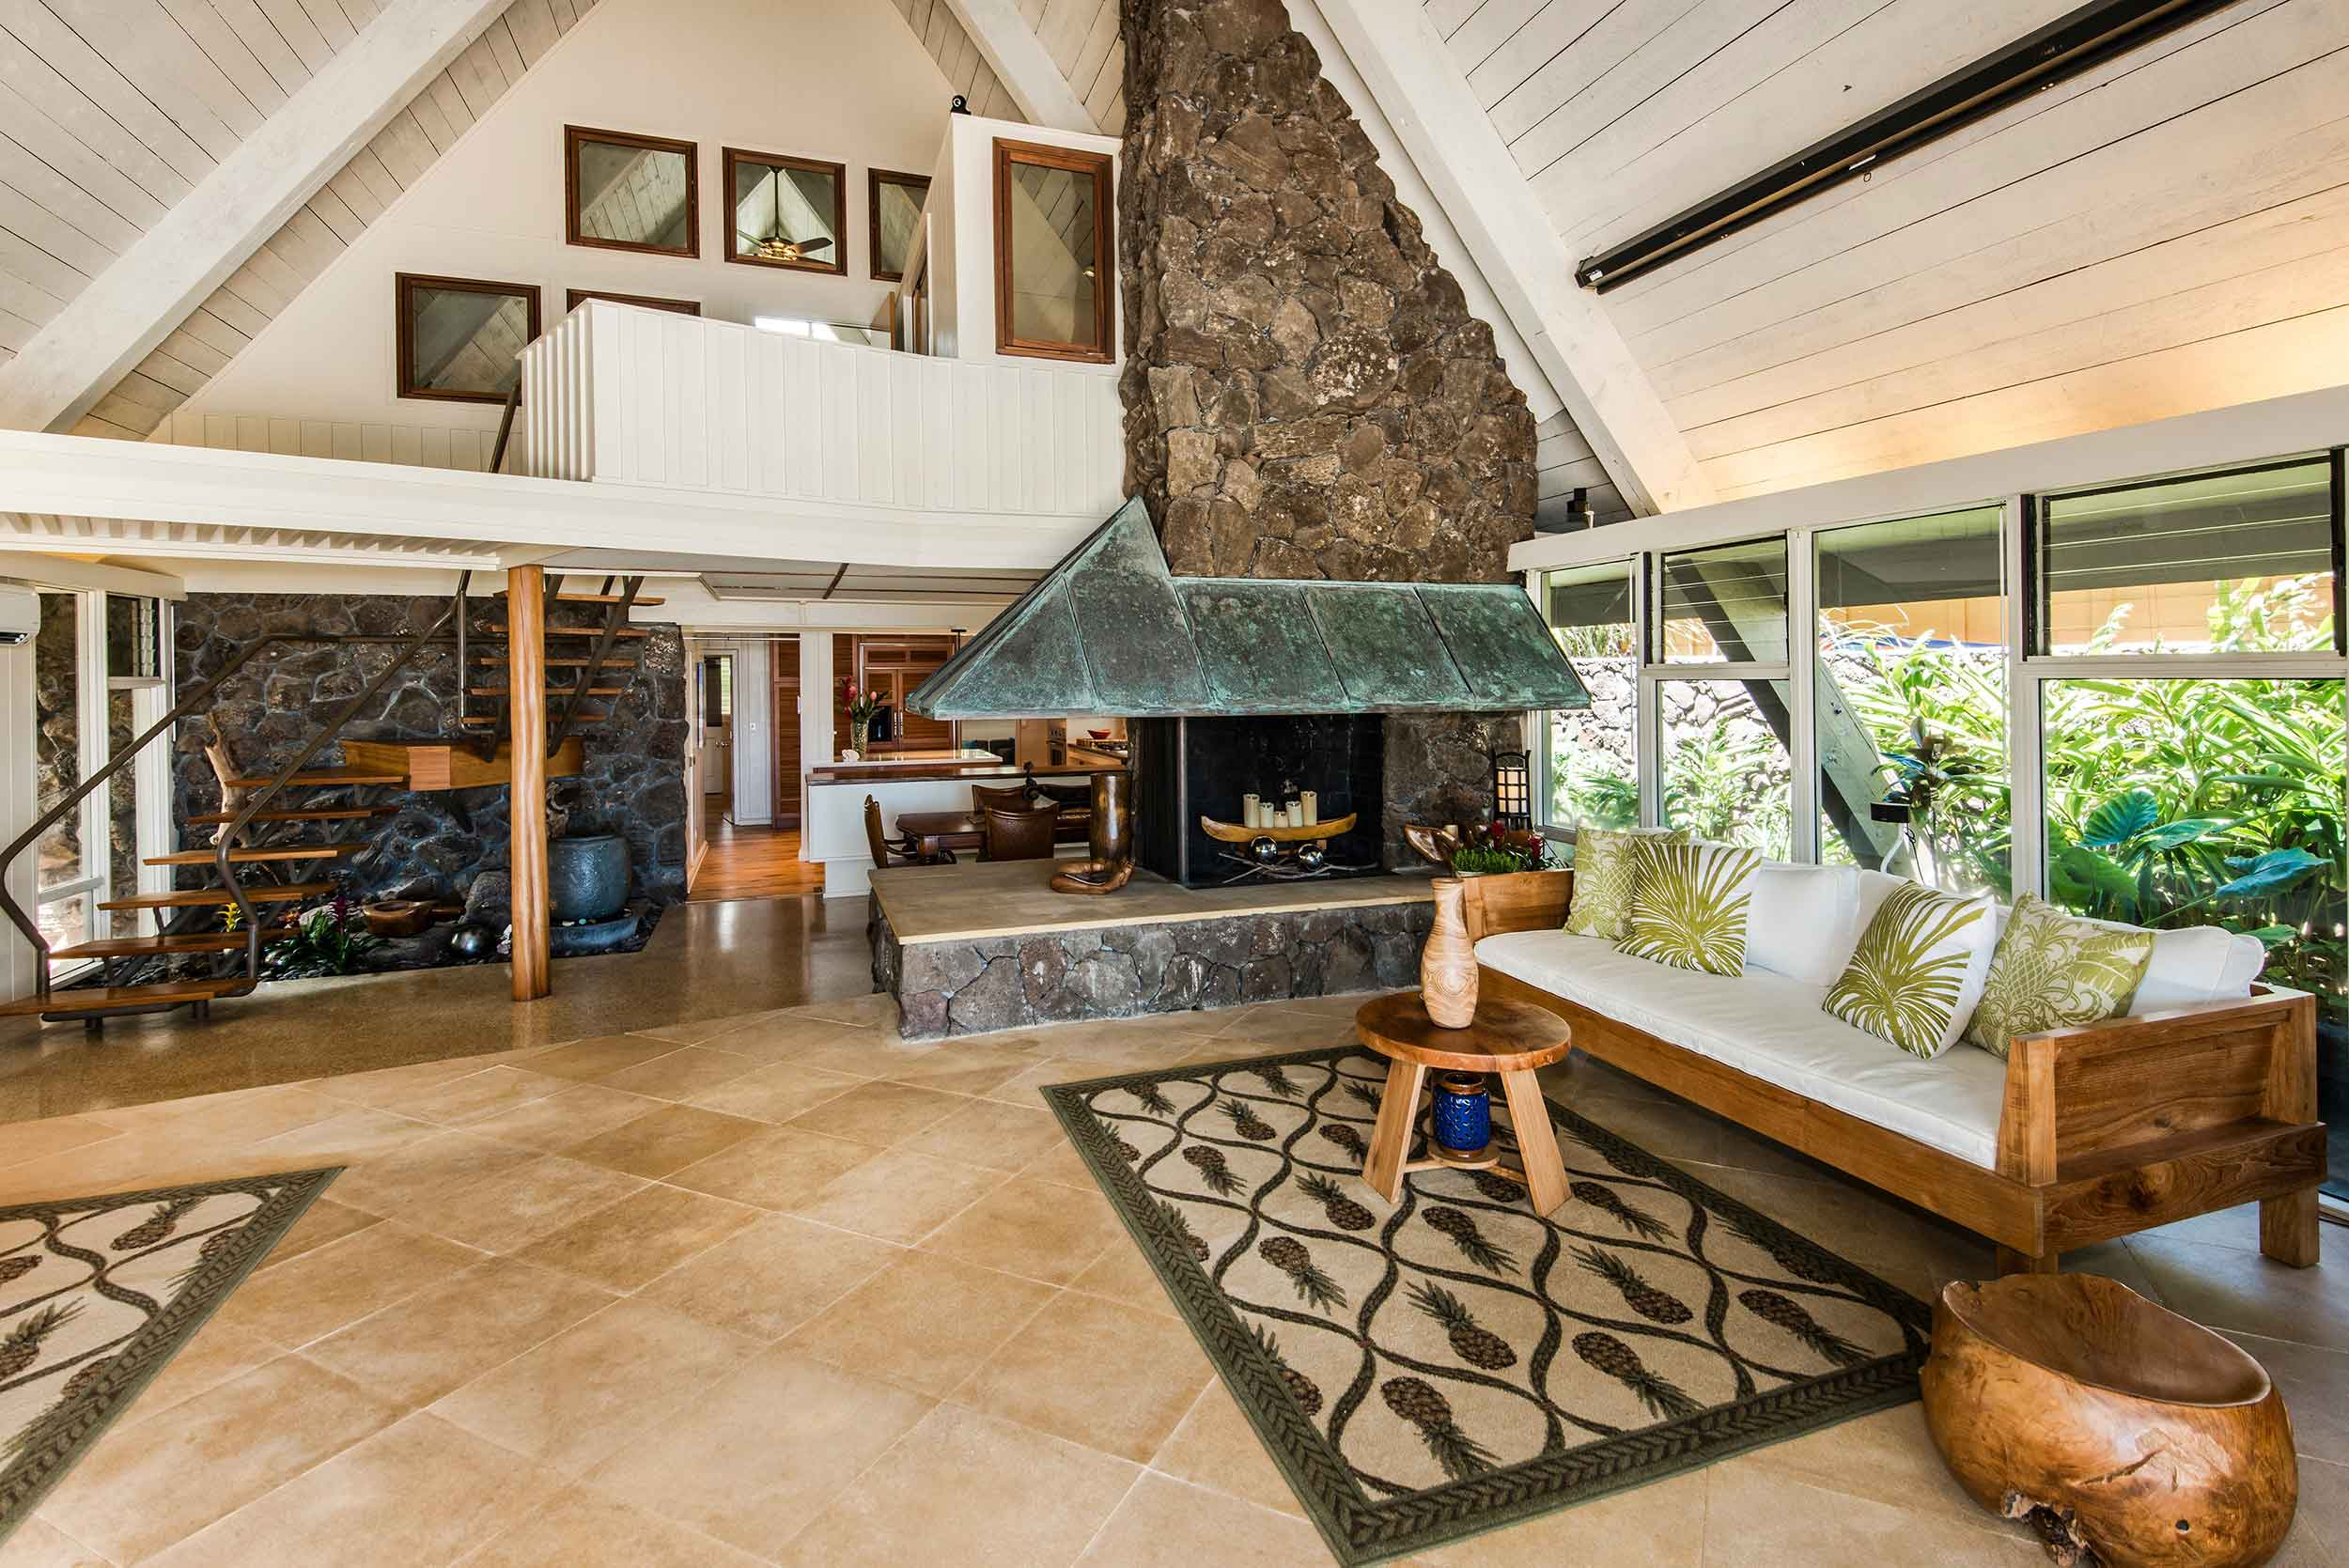 This Mid-century beachfront paradise abounds with locally materials, such as lava rock and hardwood, which have been artistically crafted into the framework of the house.